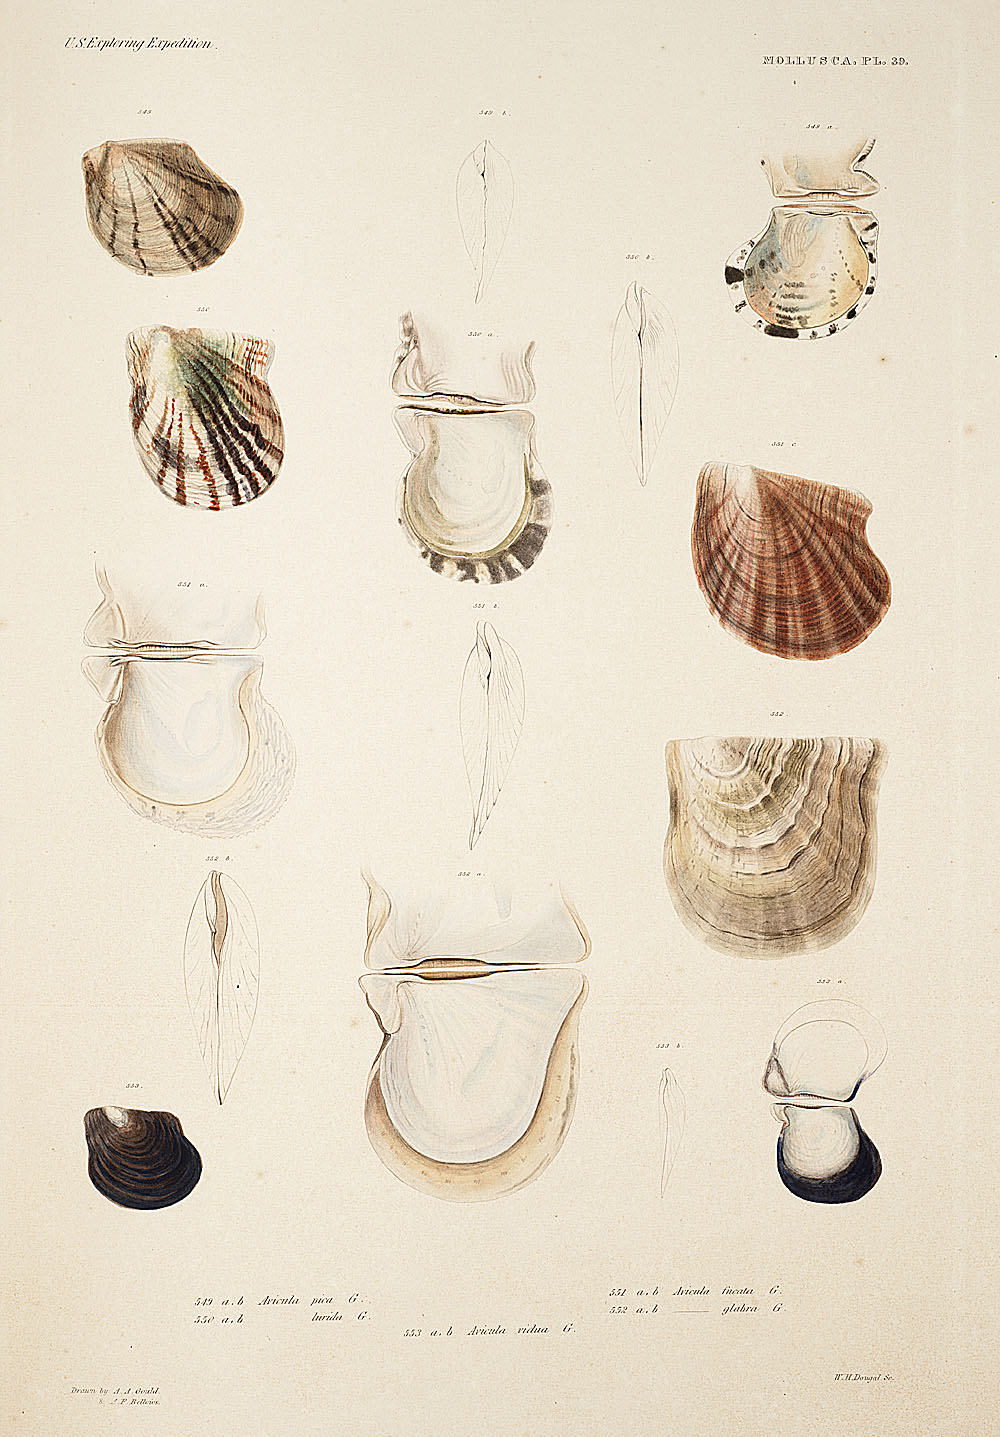 Mollusca, Pl. 39,  Image number:sil19-18-099b